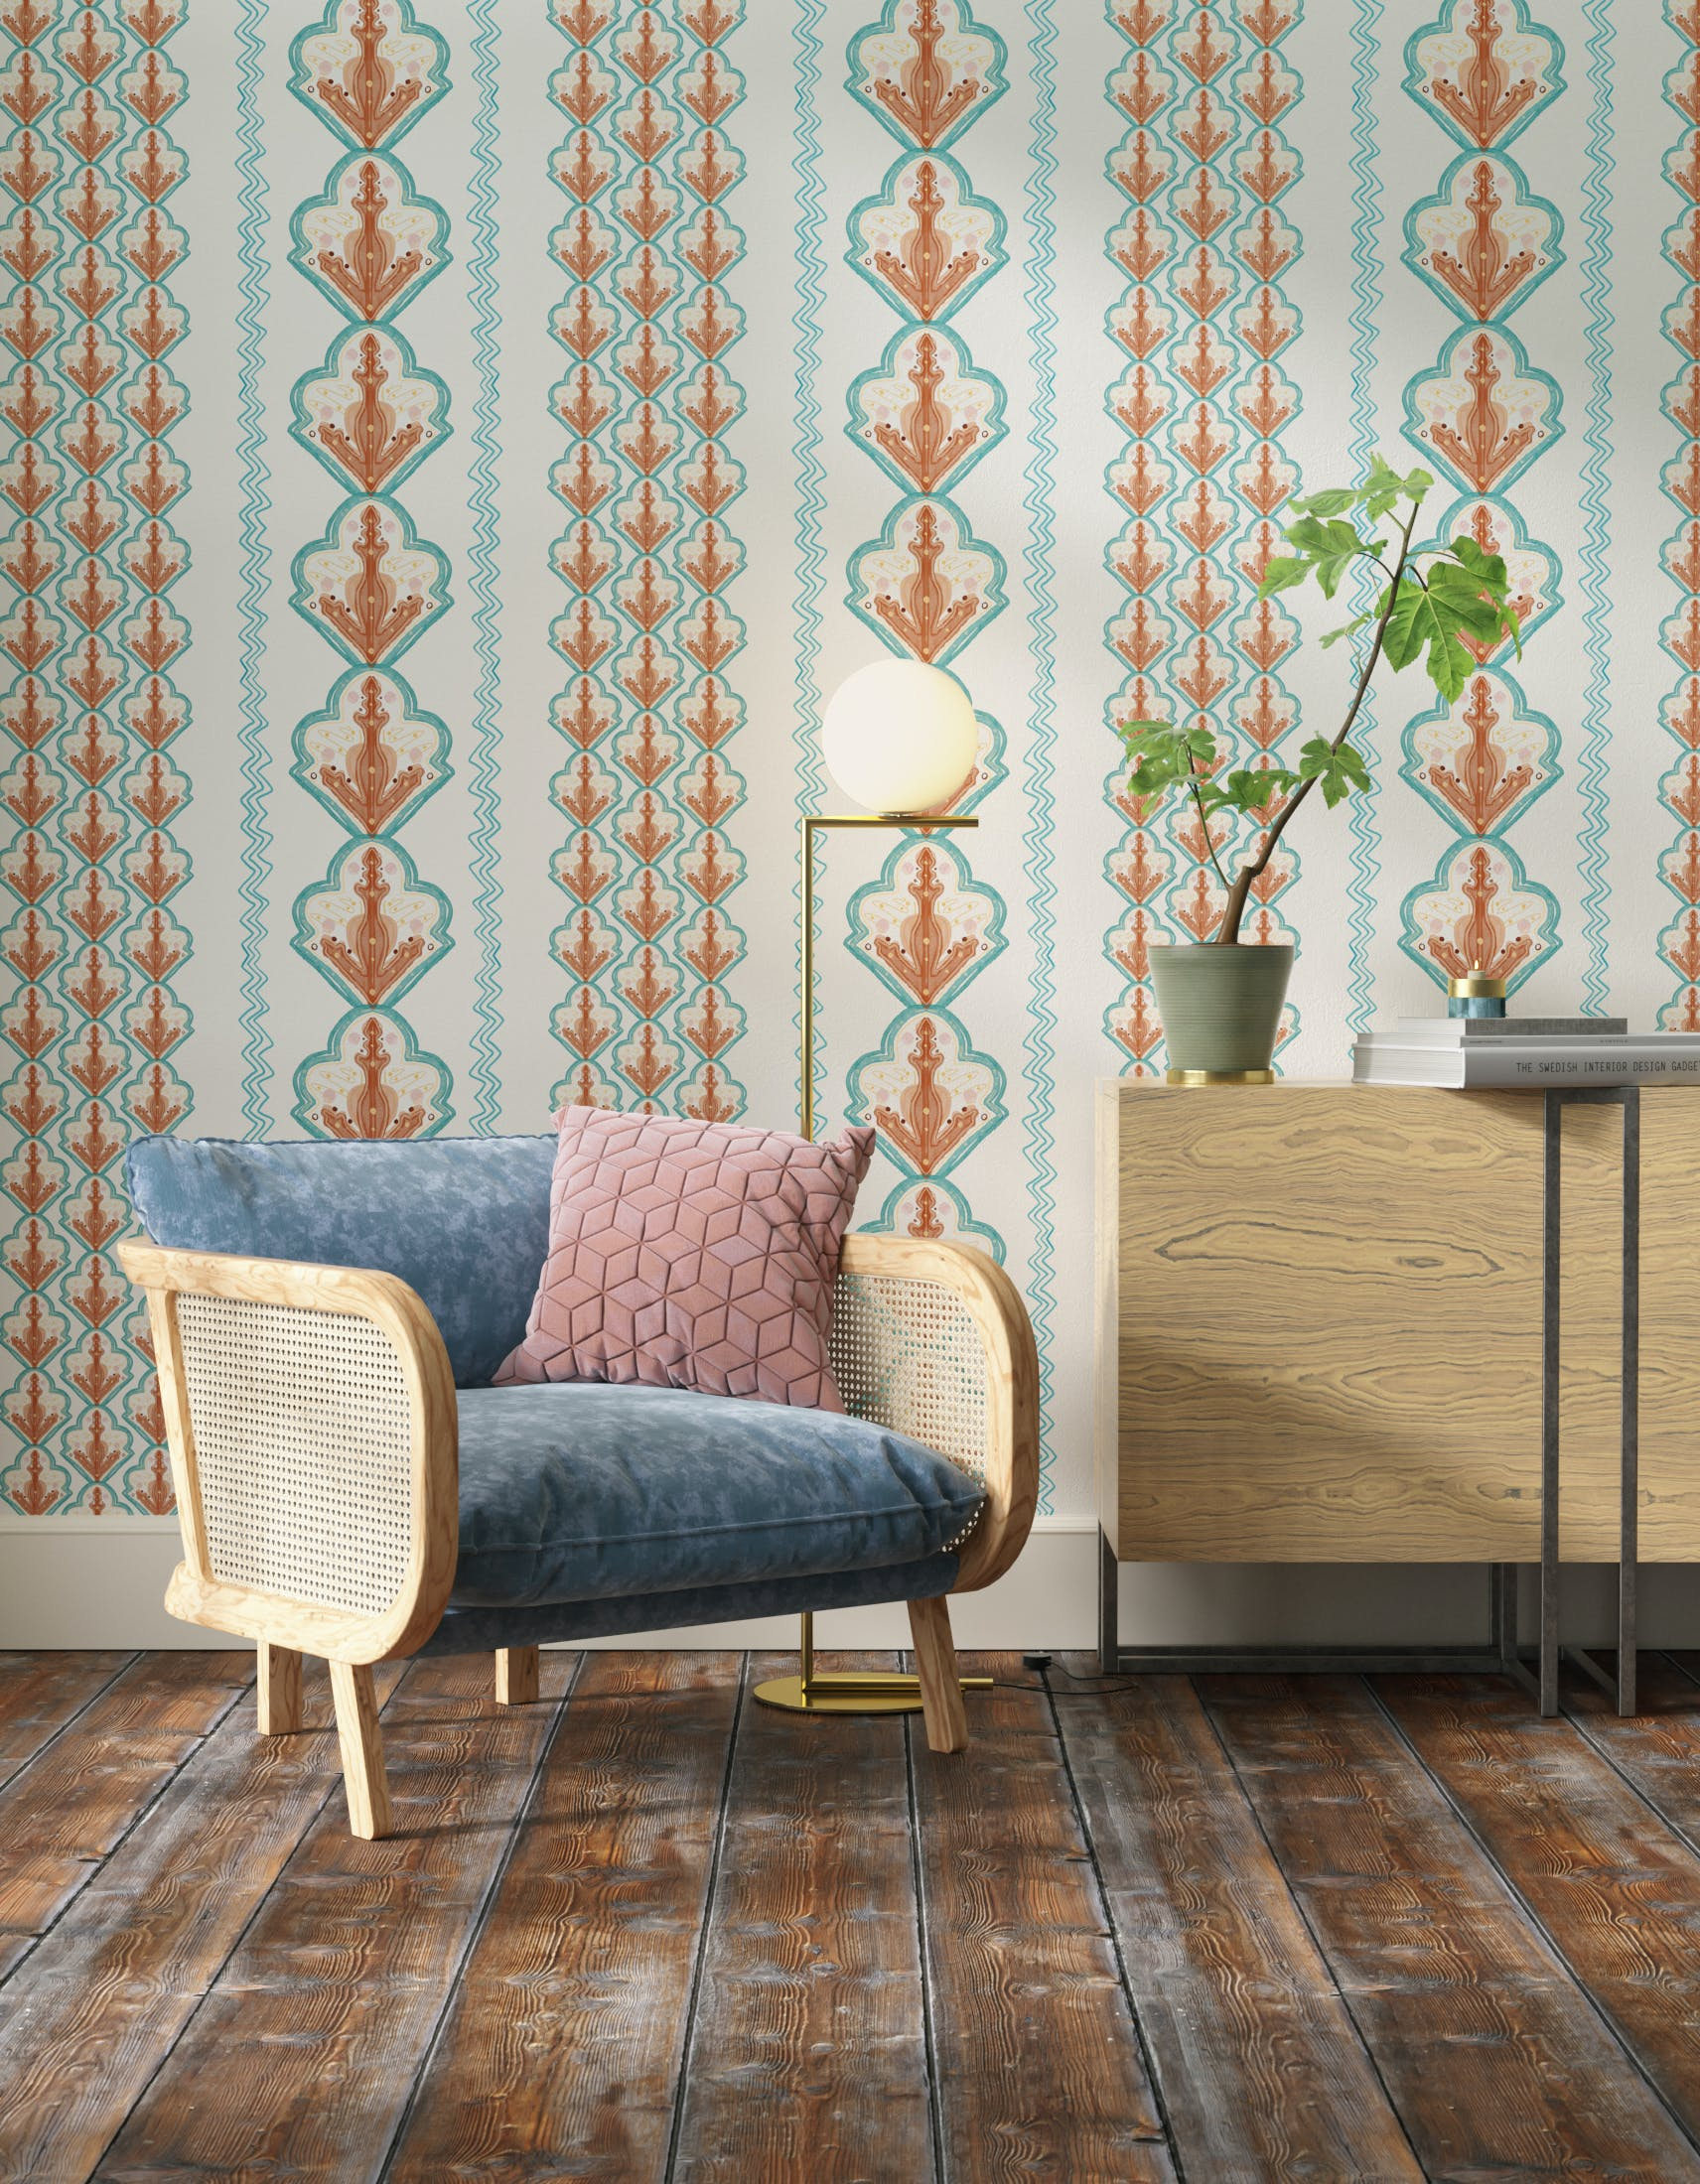 Living room decorated with Lick x Lottie McDowell Travelling Tiles 02 orange patterned mosaic wallpaper